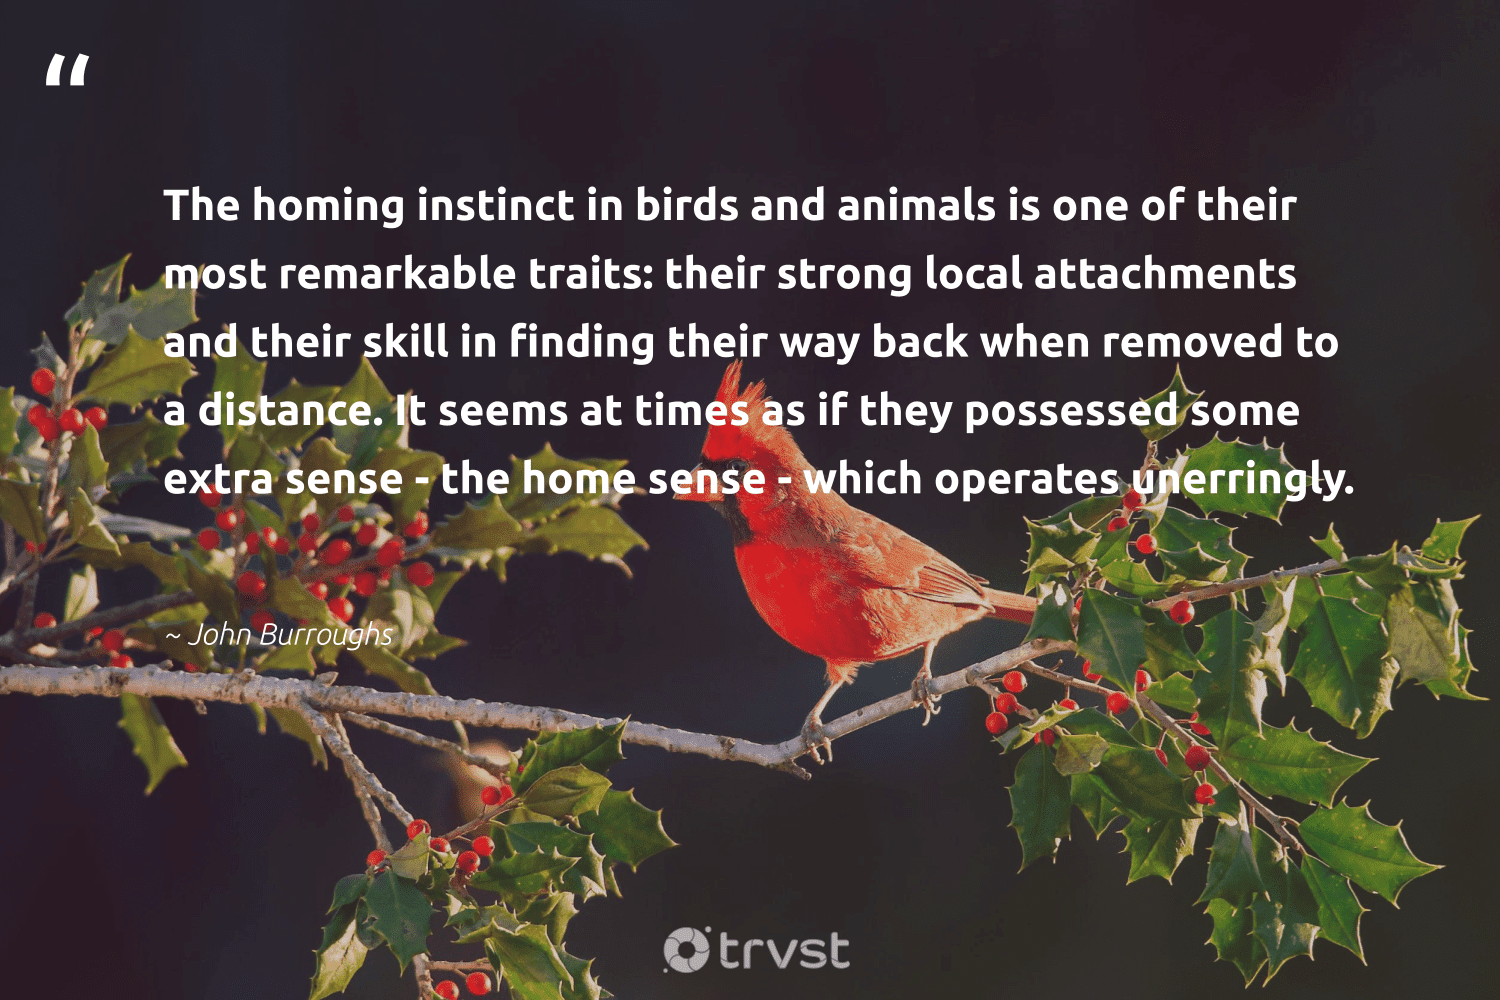 """""""The homing instinct in birds and animals is one of their most remarkable traits: their strong local attachments and their skill in finding their way back when removed to a distance. It seems at times as if they possessed some extra sense - the home sense - which operates unerringly.""""  - John Burroughs #trvst #quotes #birds #animals #wildlife #nature #gogreen #animallovers #natural #bethechange #animal #biology"""